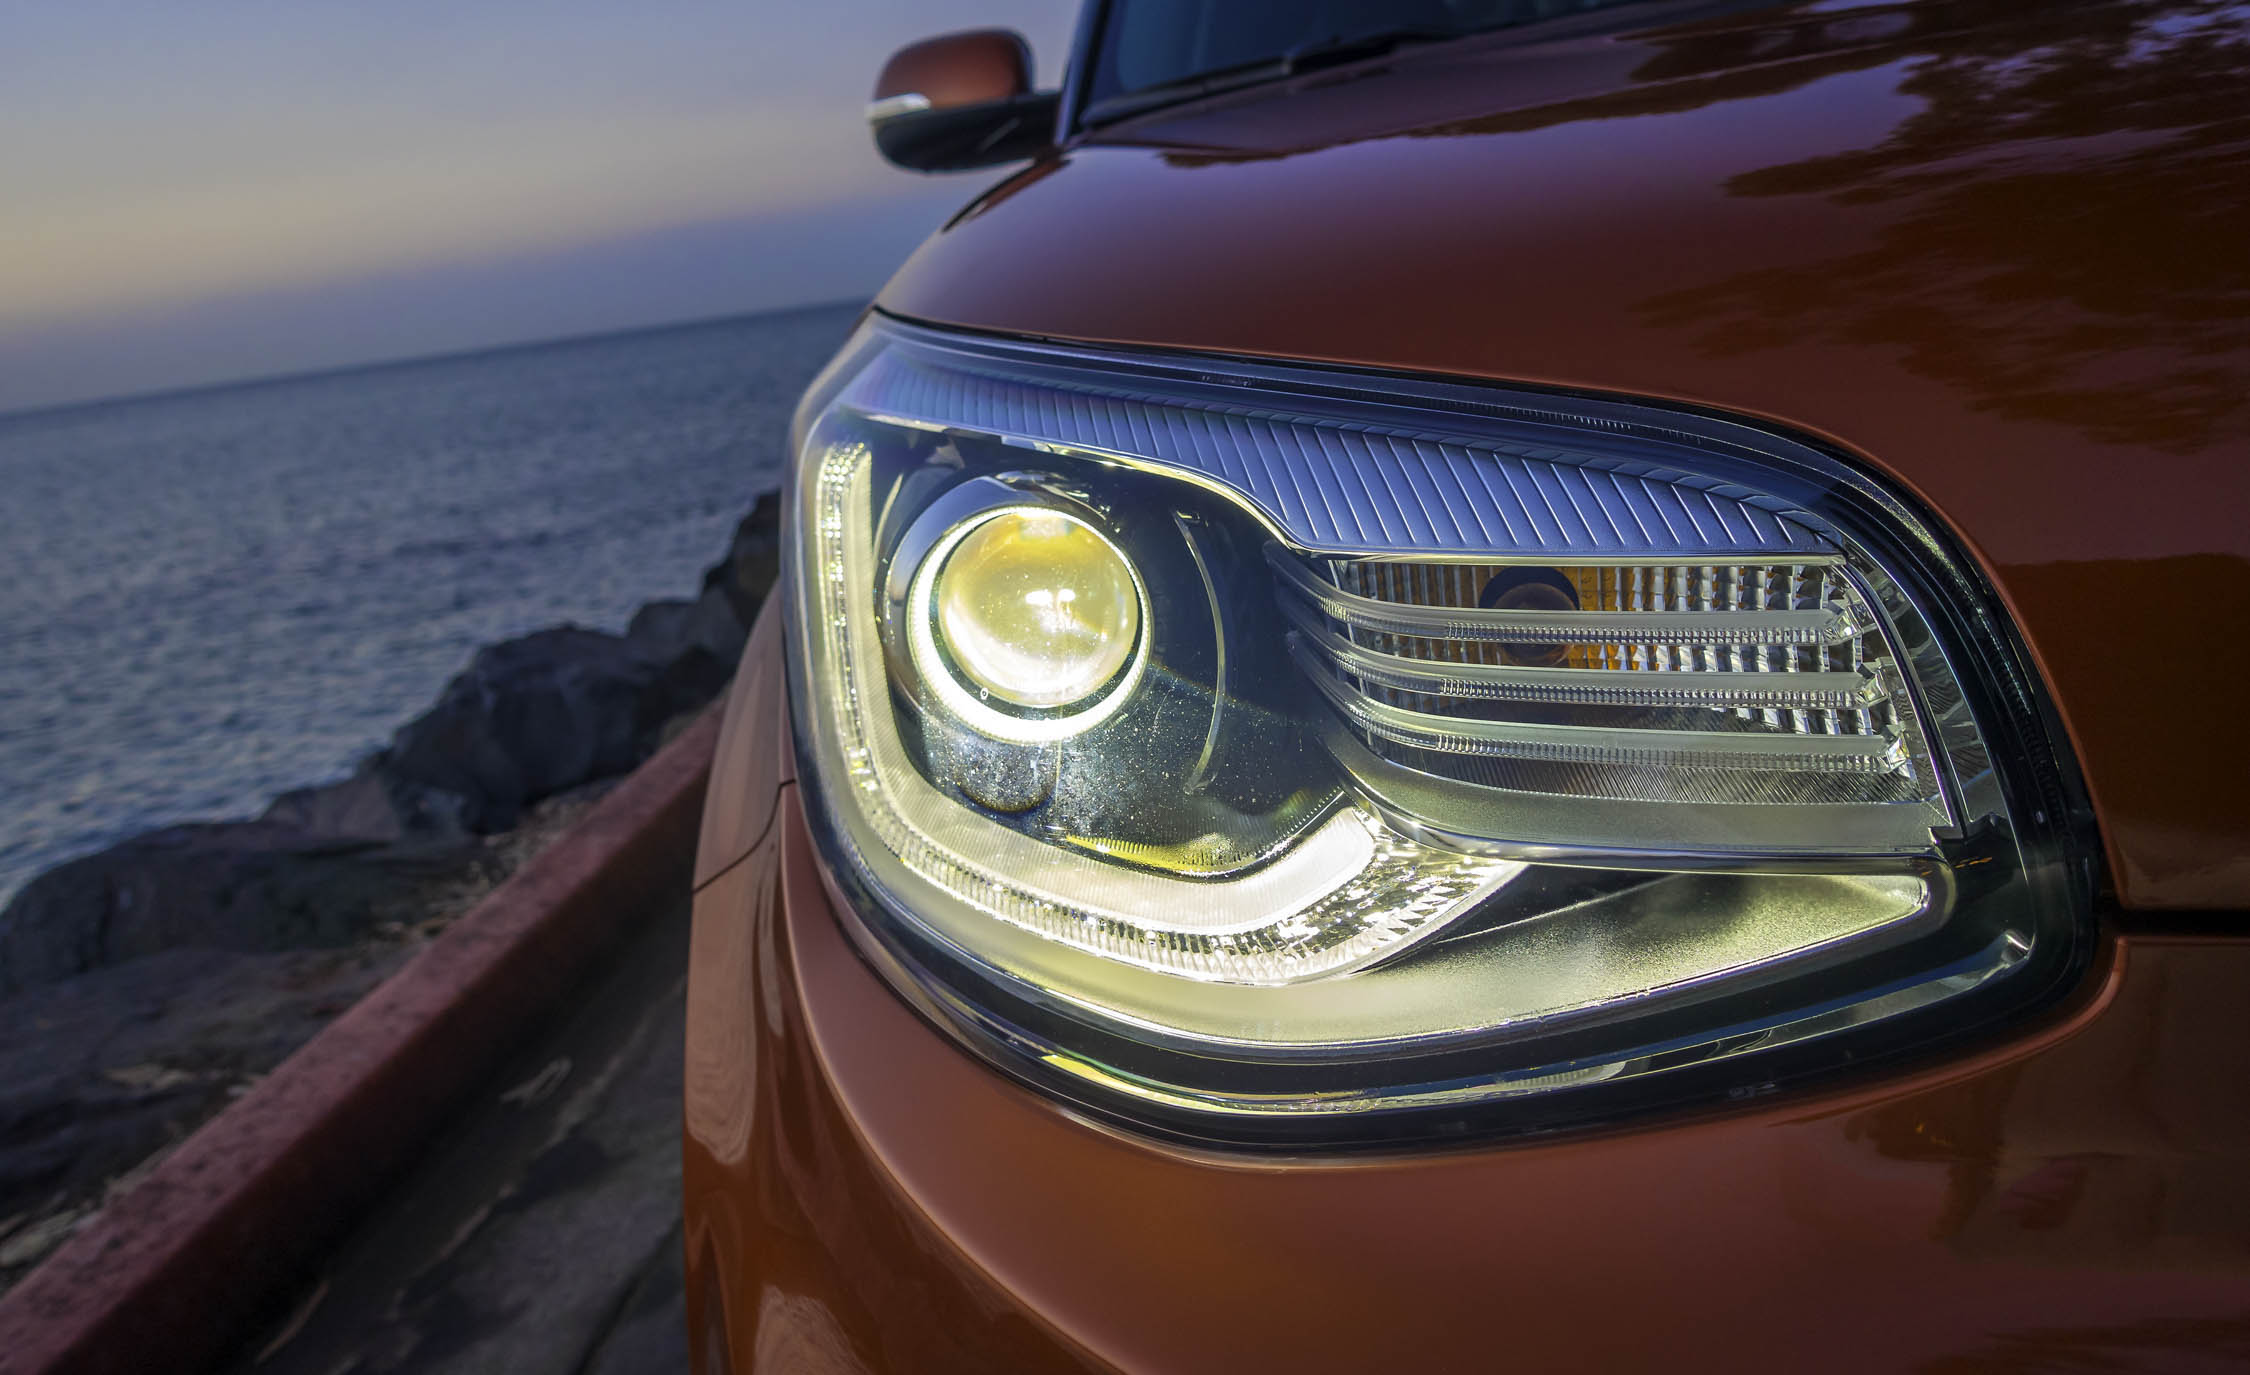 2017 Kia Soul Turbo Exterior View Headlight (View 10 of 15)